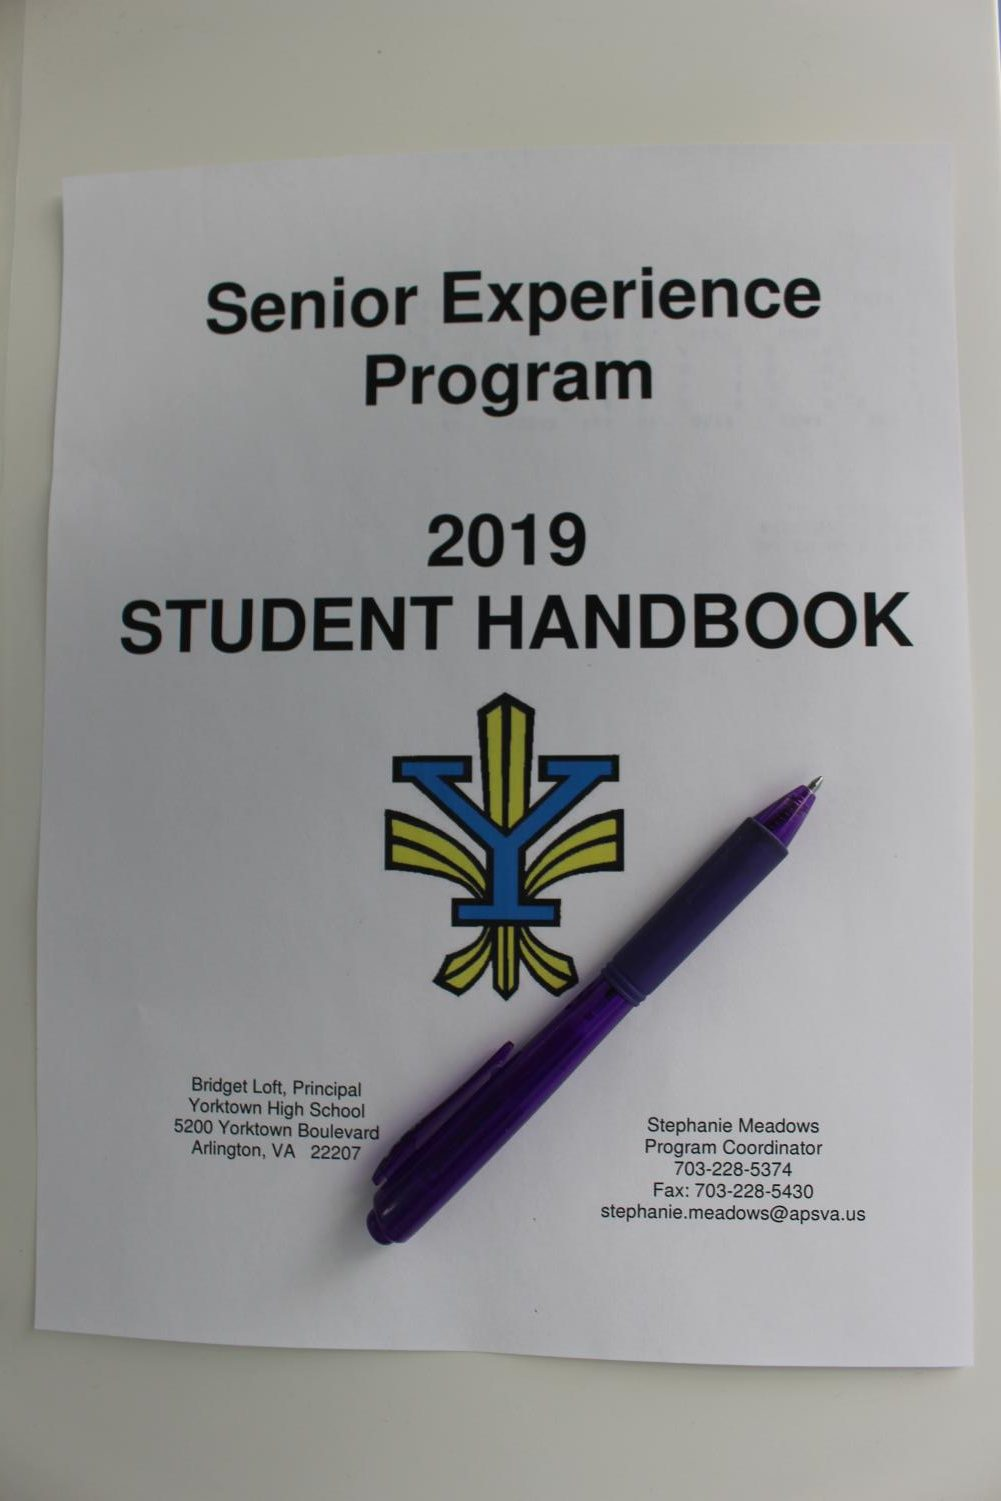 Students prepare for Senior Experience using their handbooks